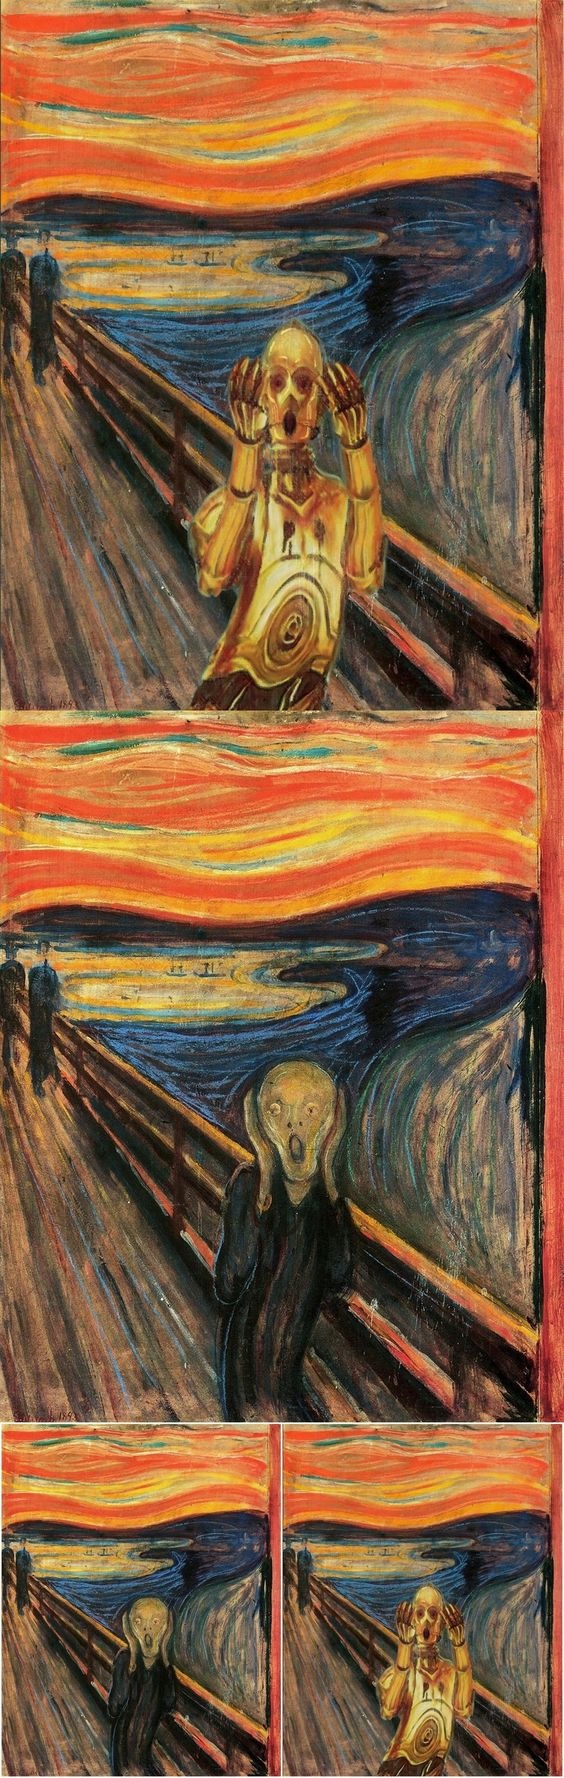 The Scream – Featuring C-3PO. Learn more at: http://bit.ly/1ySk4qk